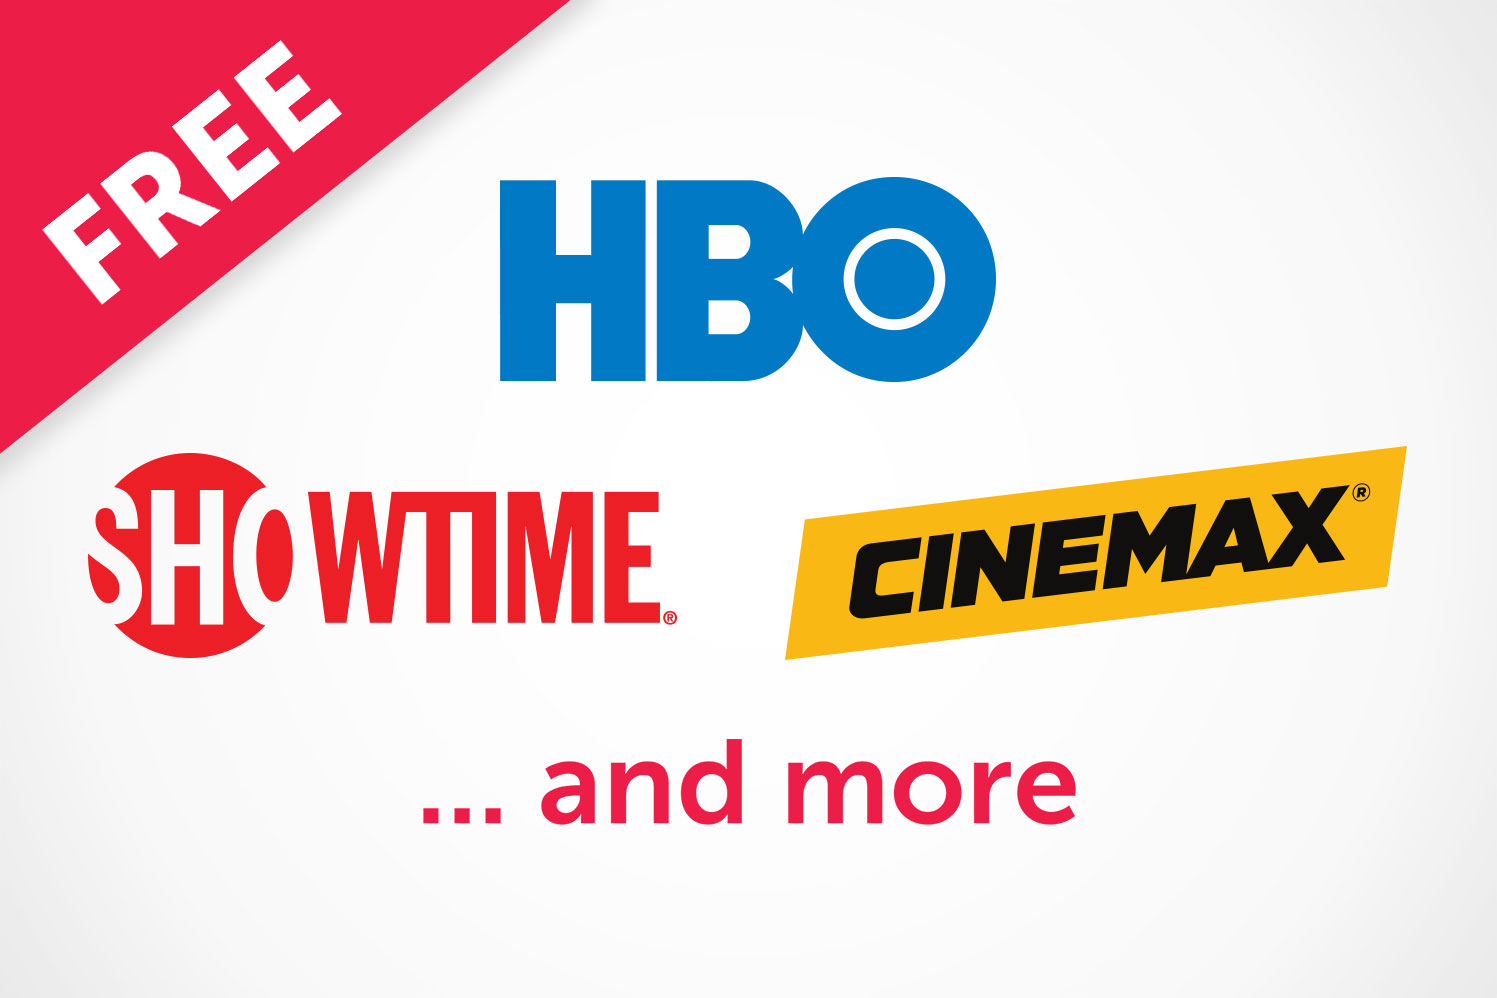 Free premium channels: HBO, Showtime, Cinemax and more.